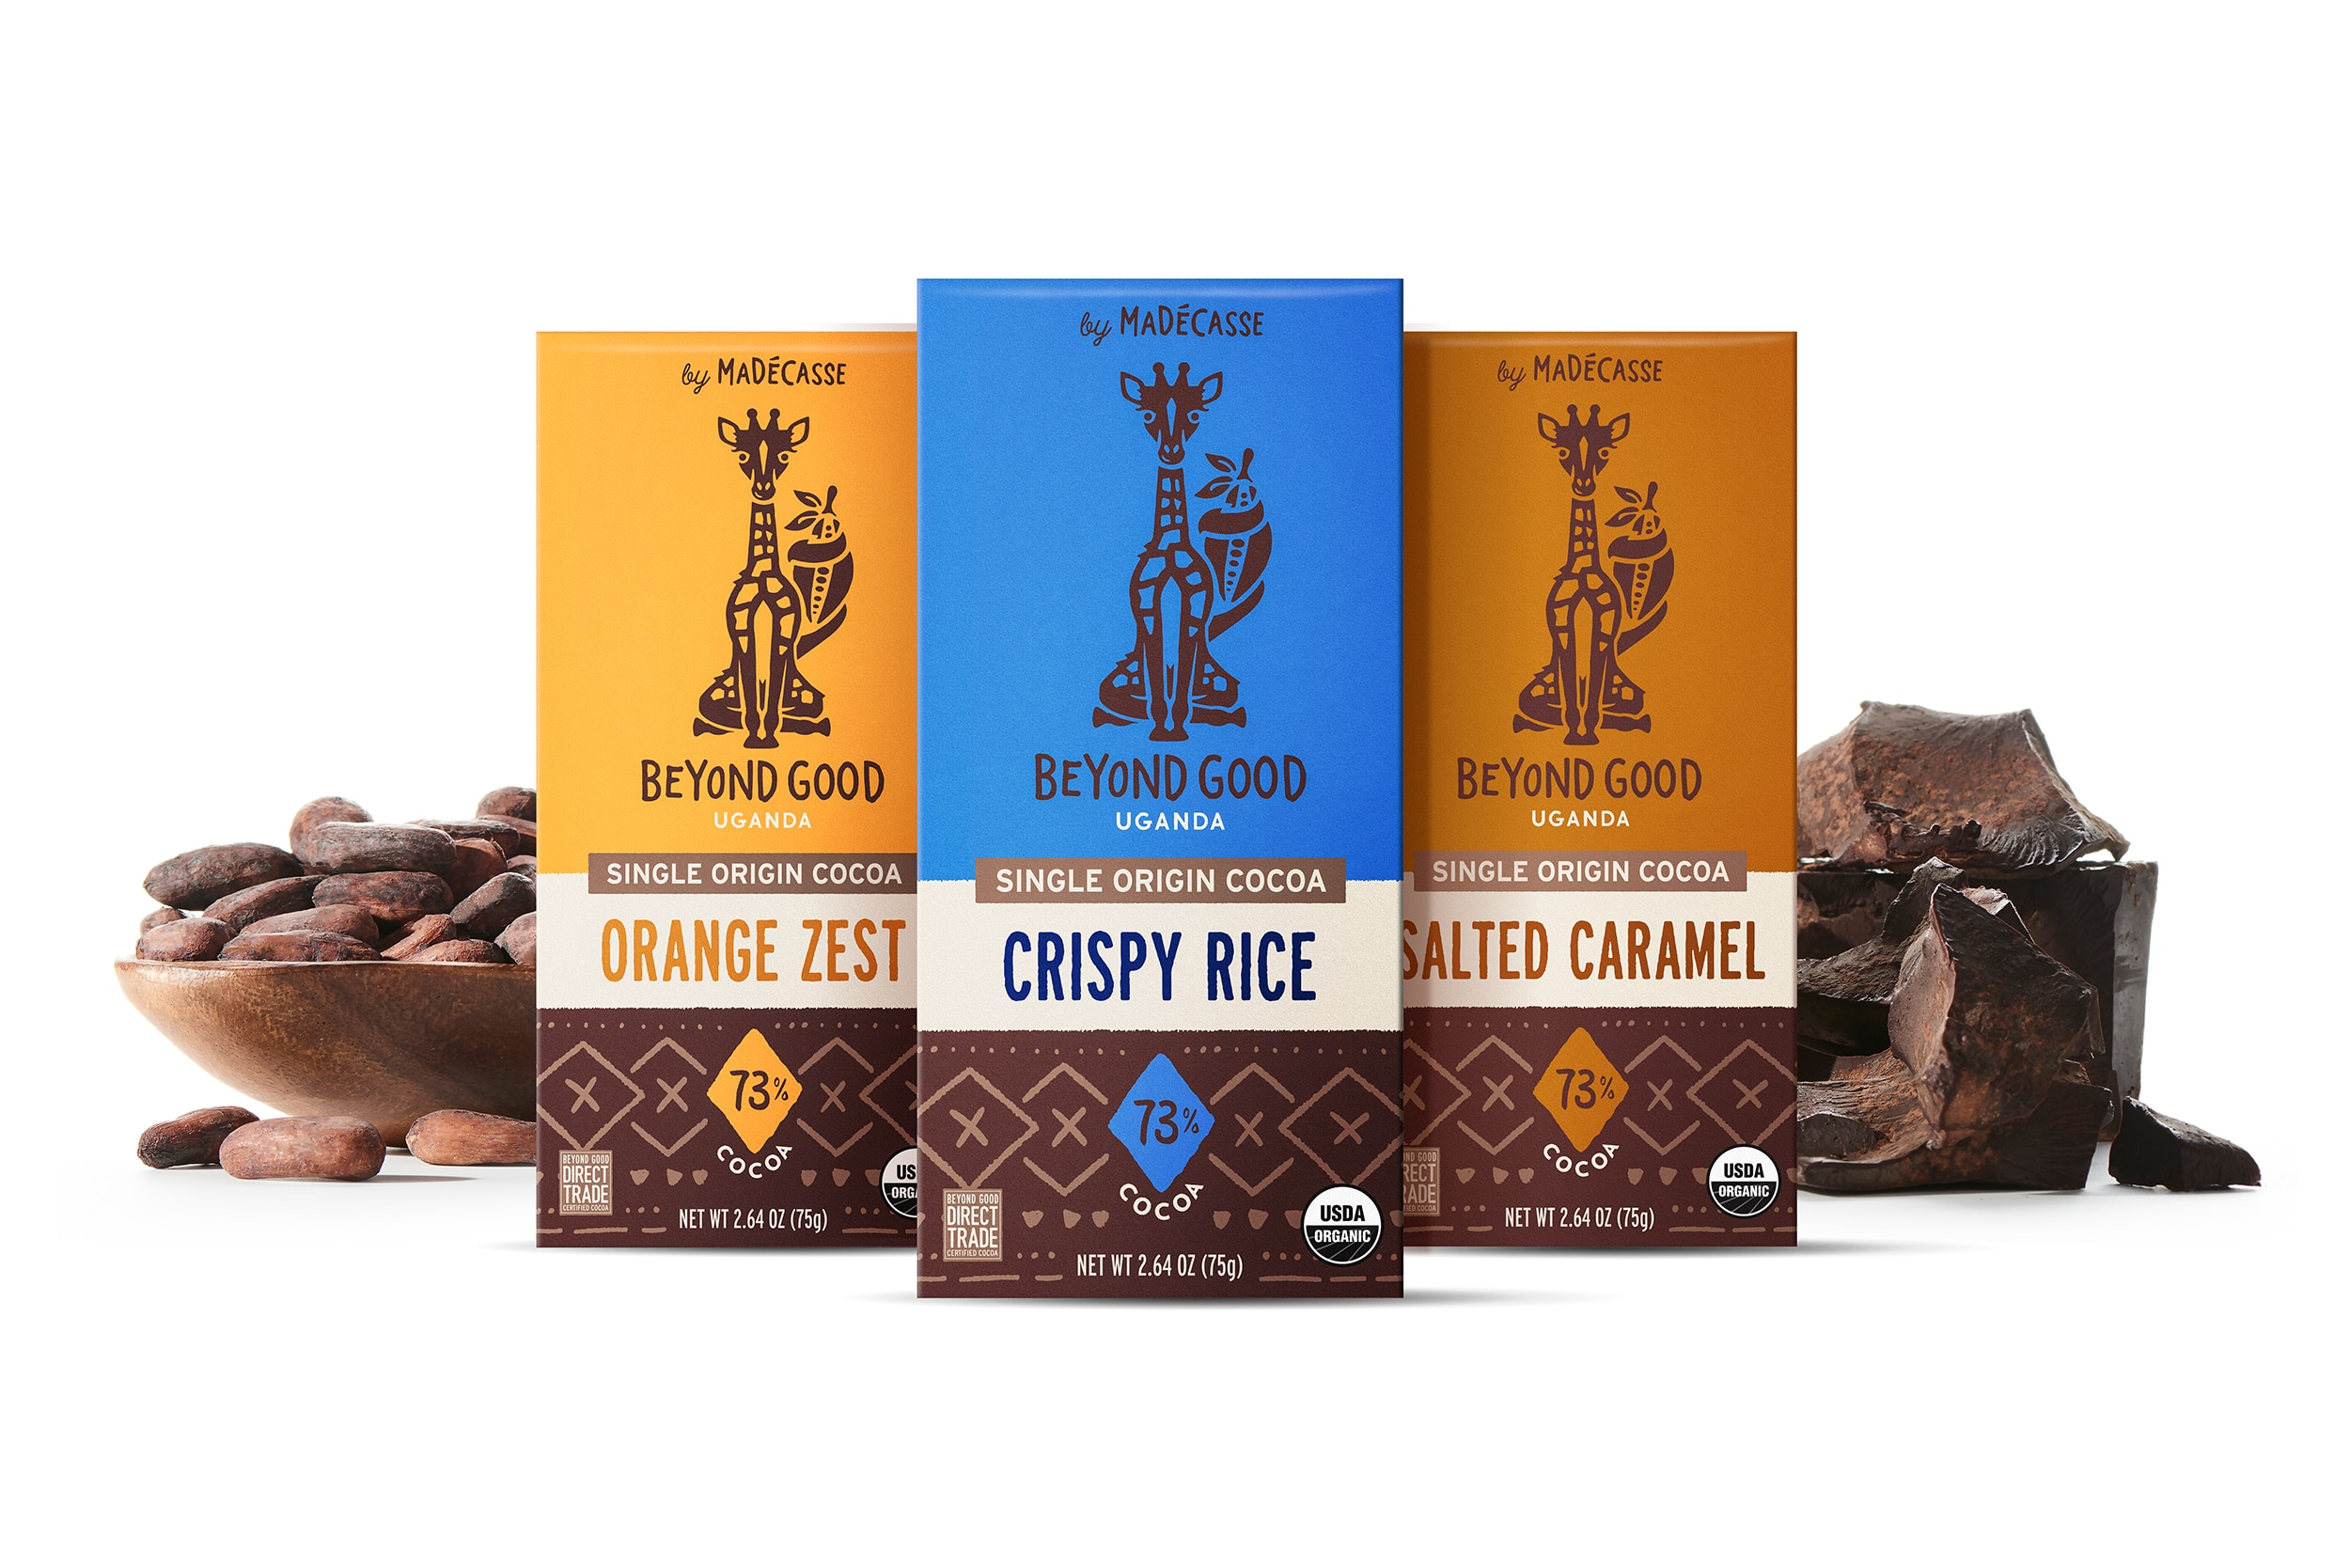 Beyond Good Launches Three New Chocolate Bars